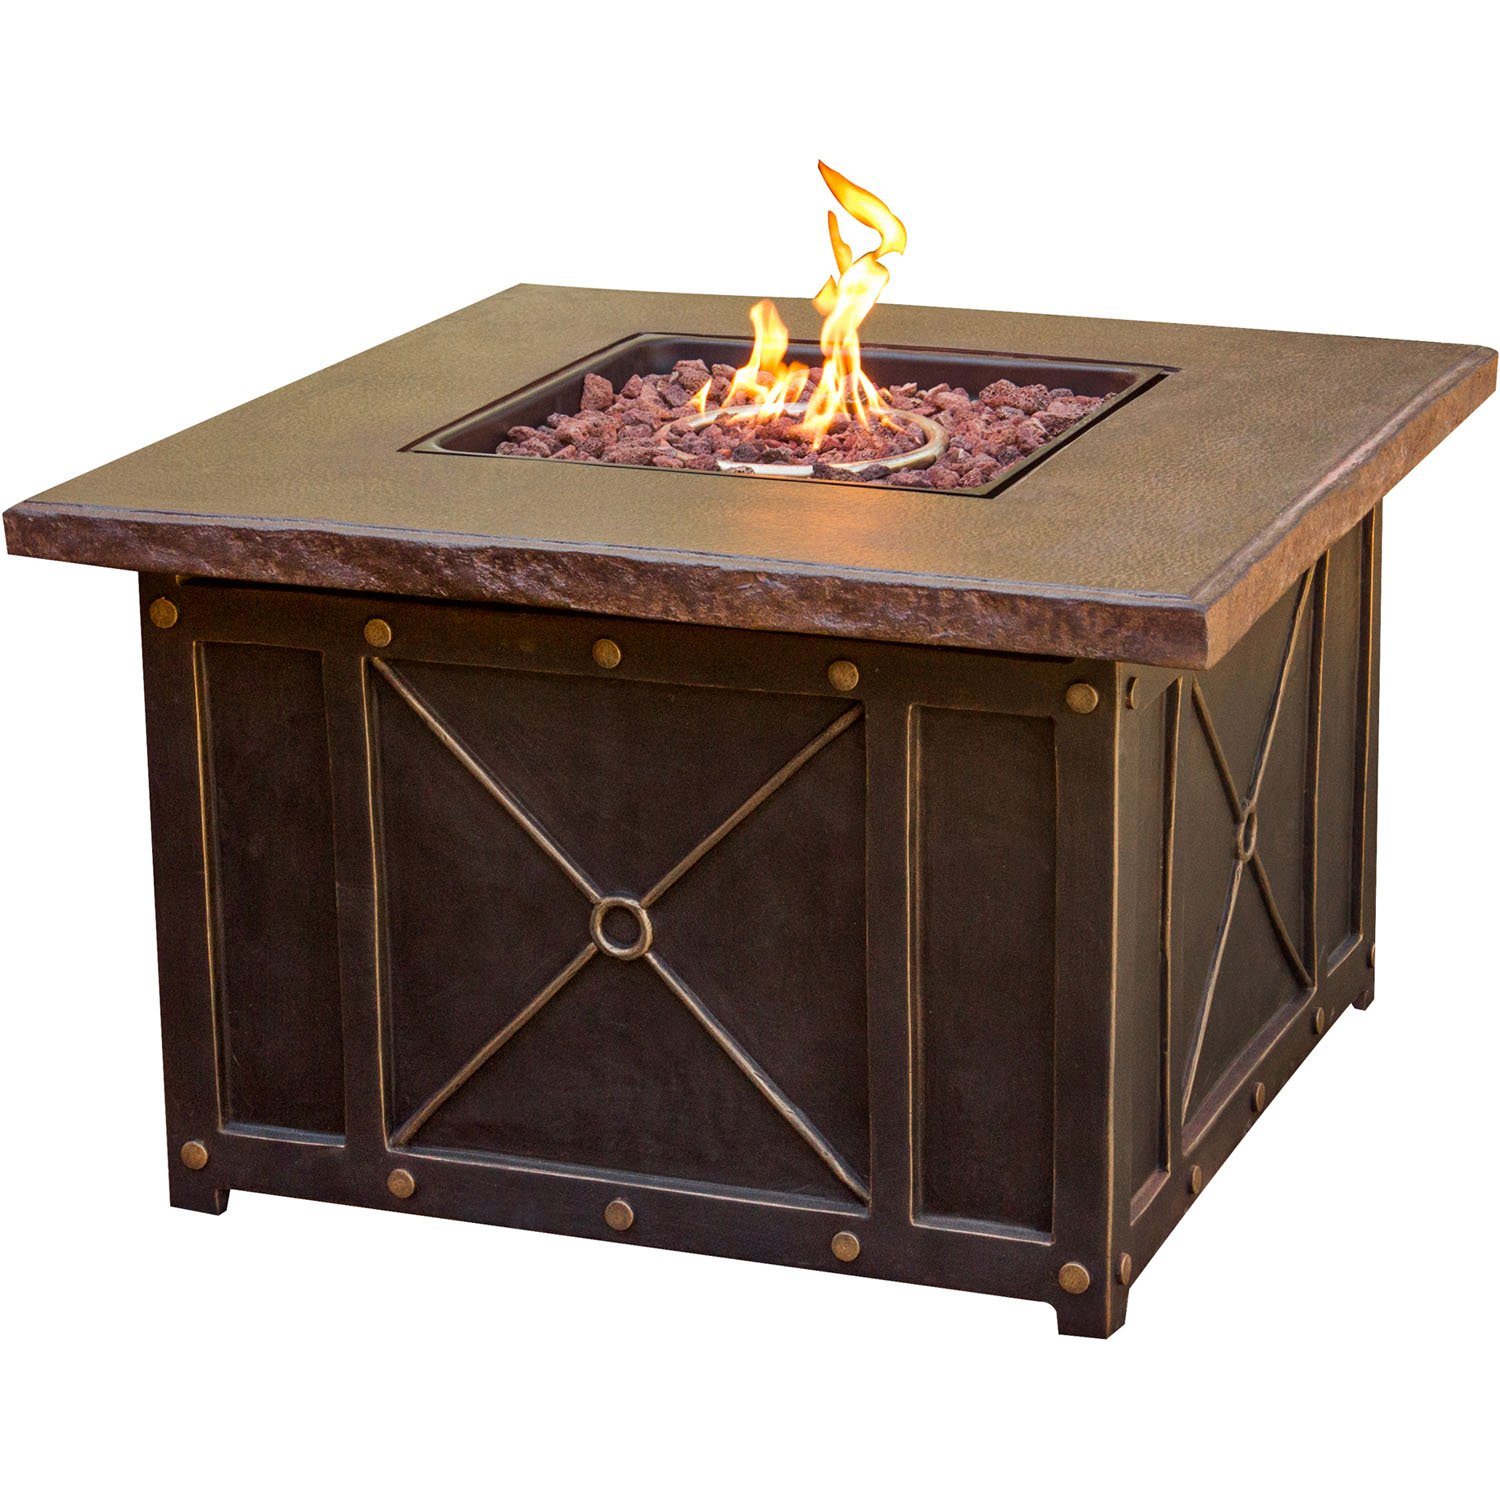 Cambridge CLASSIC1PCFP Square Gas Fire Pit with Durastone Top, 40 Outdoor Furniture